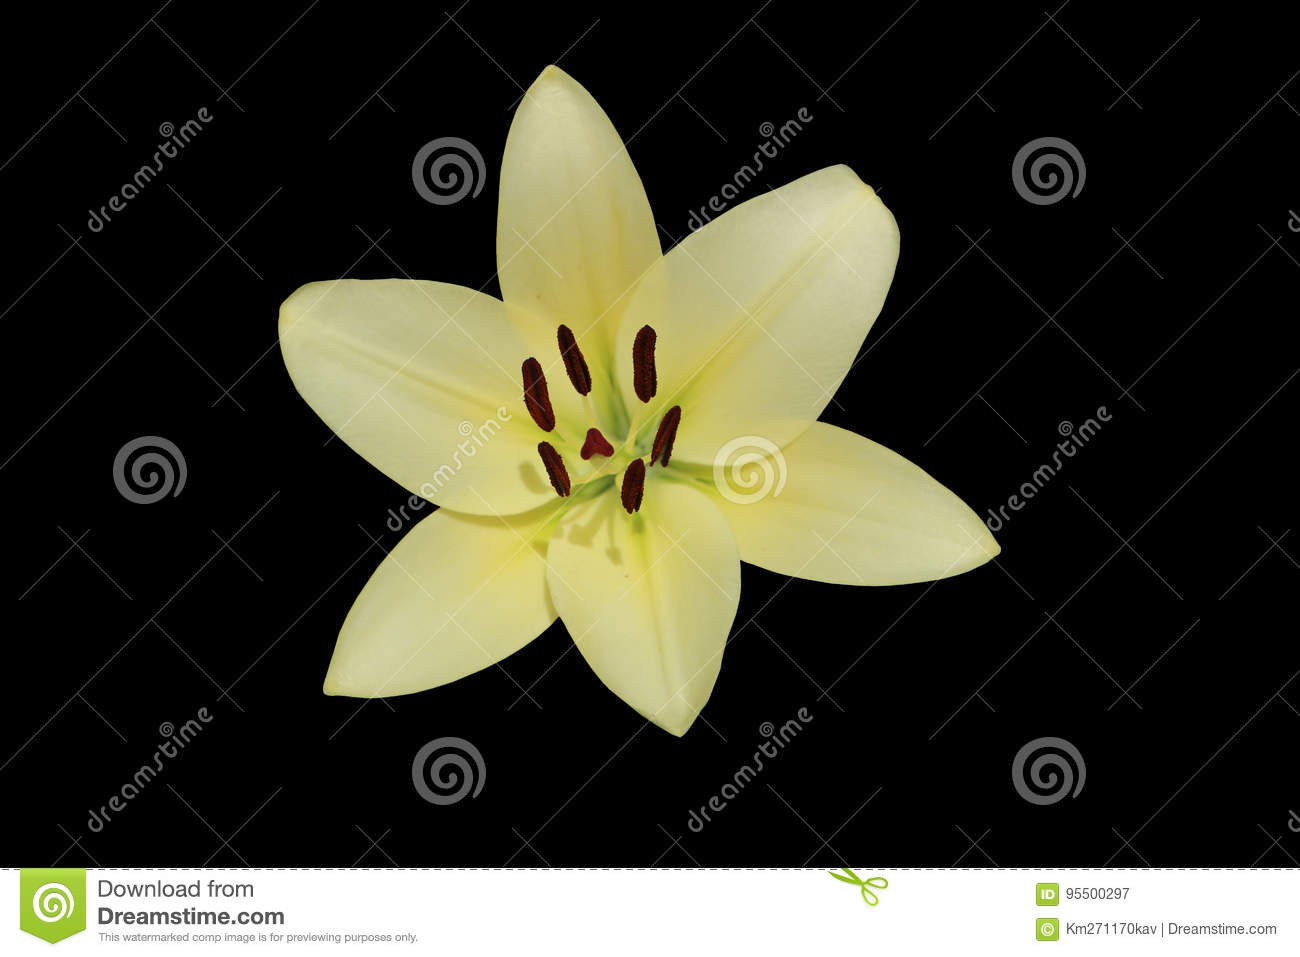 L A Hybrid Lilie Courier Large White Lime Flower Isolated On Stock Image Image Of Lilie Courier 95500297